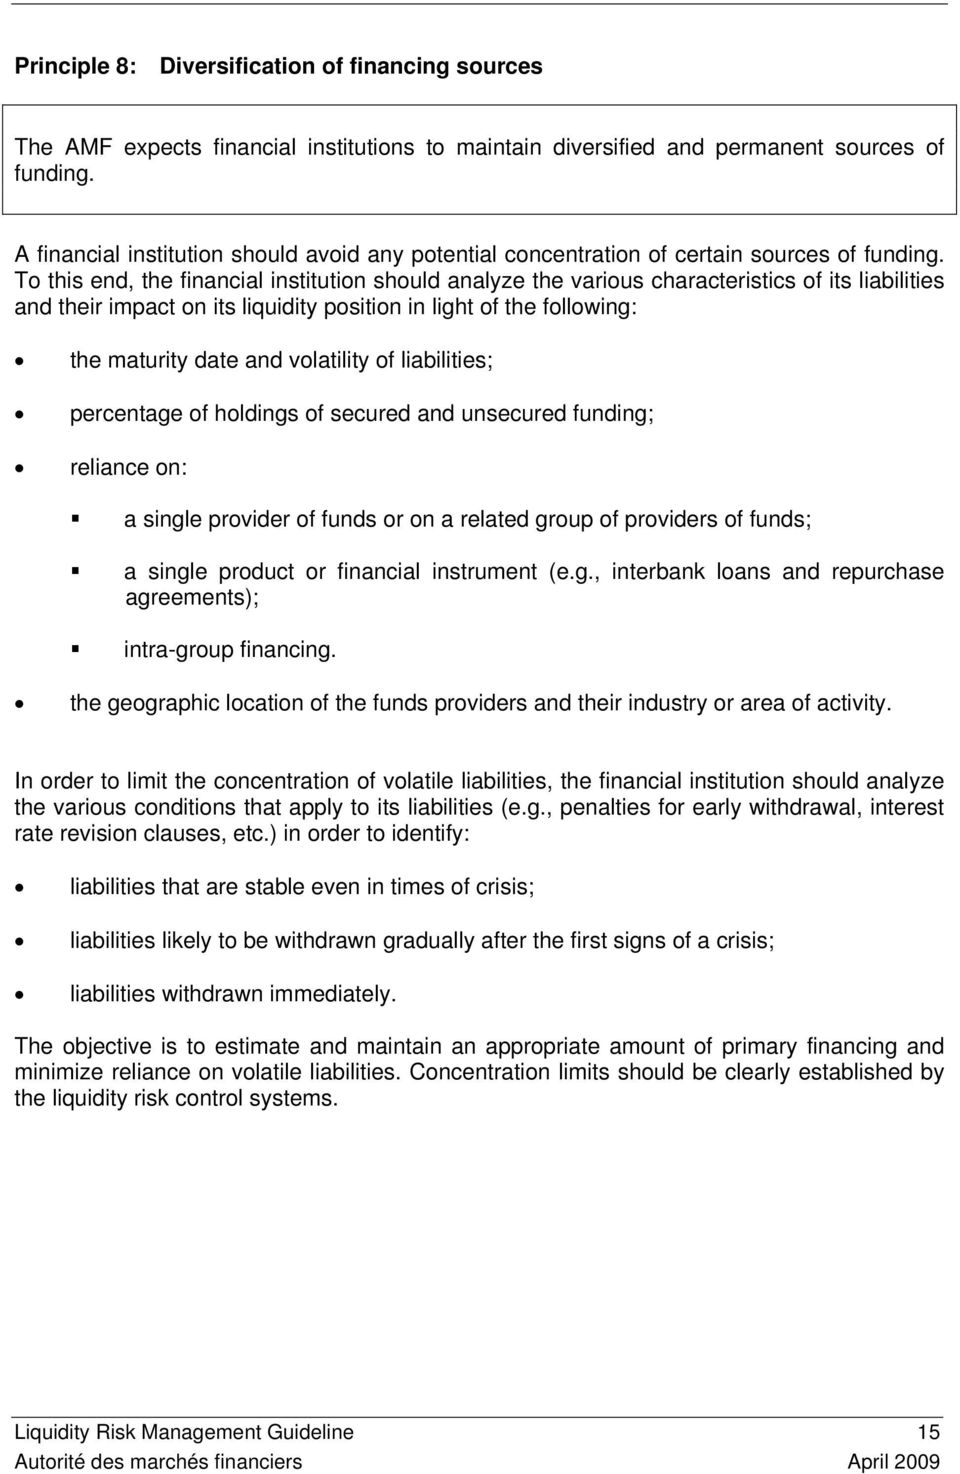 To this end, the financial institution should analyze the various characteristics of its liabilities and their impact on its liquidity position in light of the following: the maturity date and